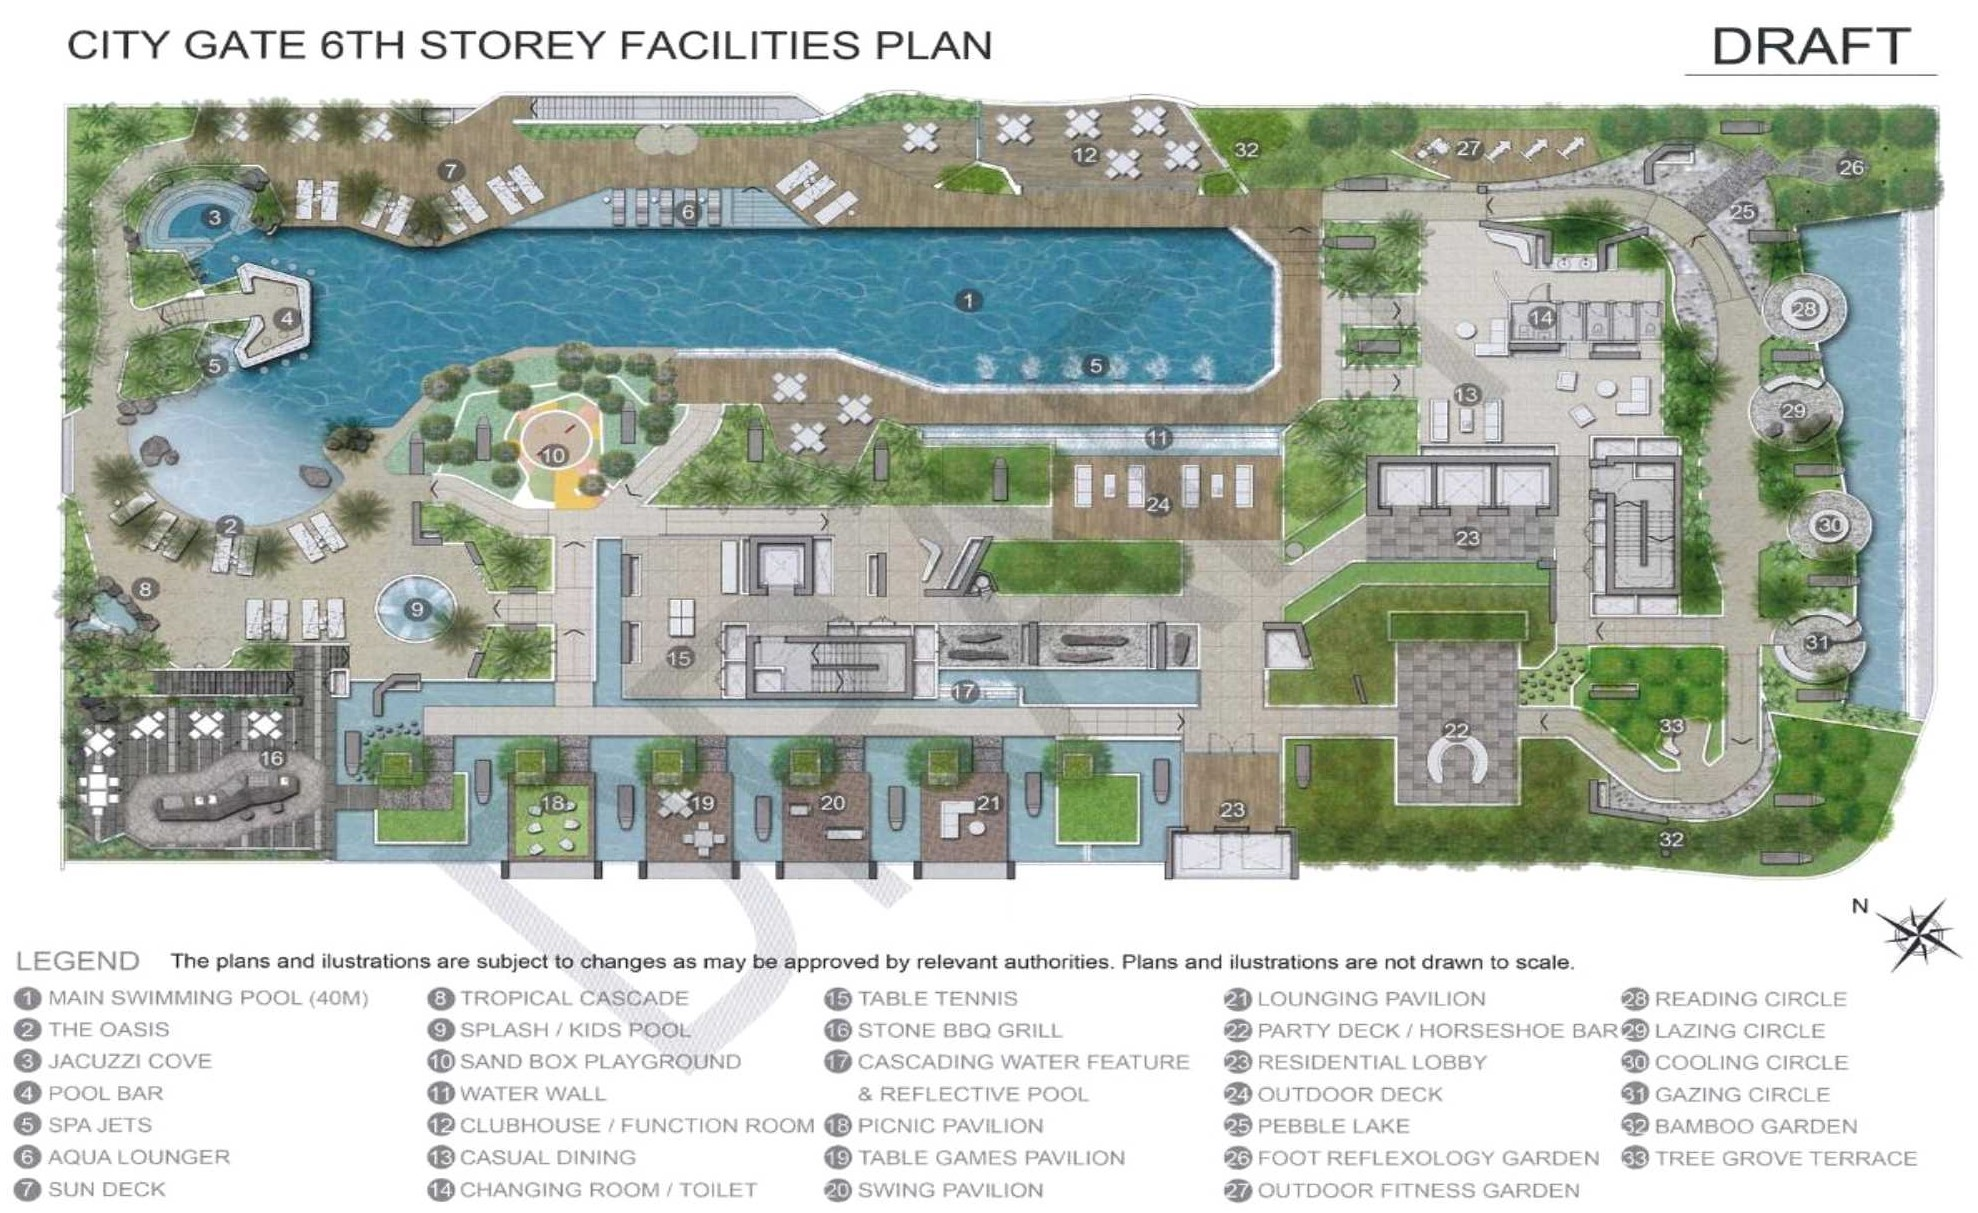 City Gate Facility Plan - 6th Stoery